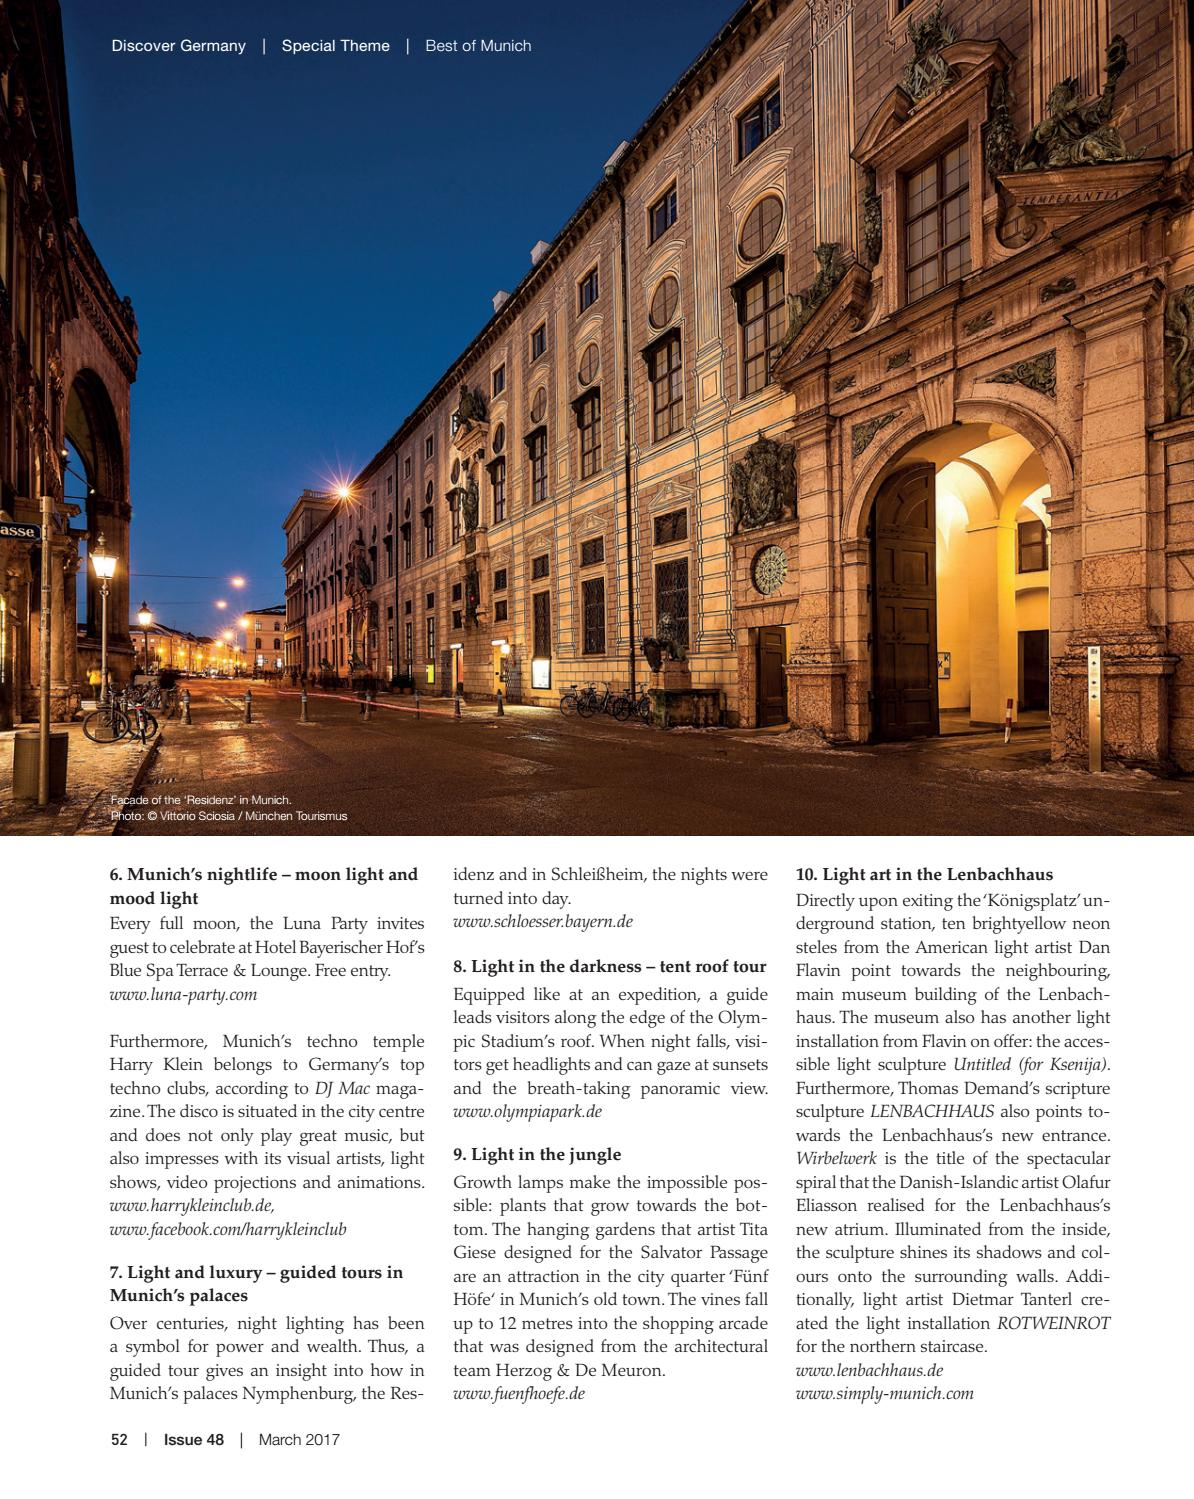 Discover Germany, Issue 48, March 2017 by Scan Group - issuu